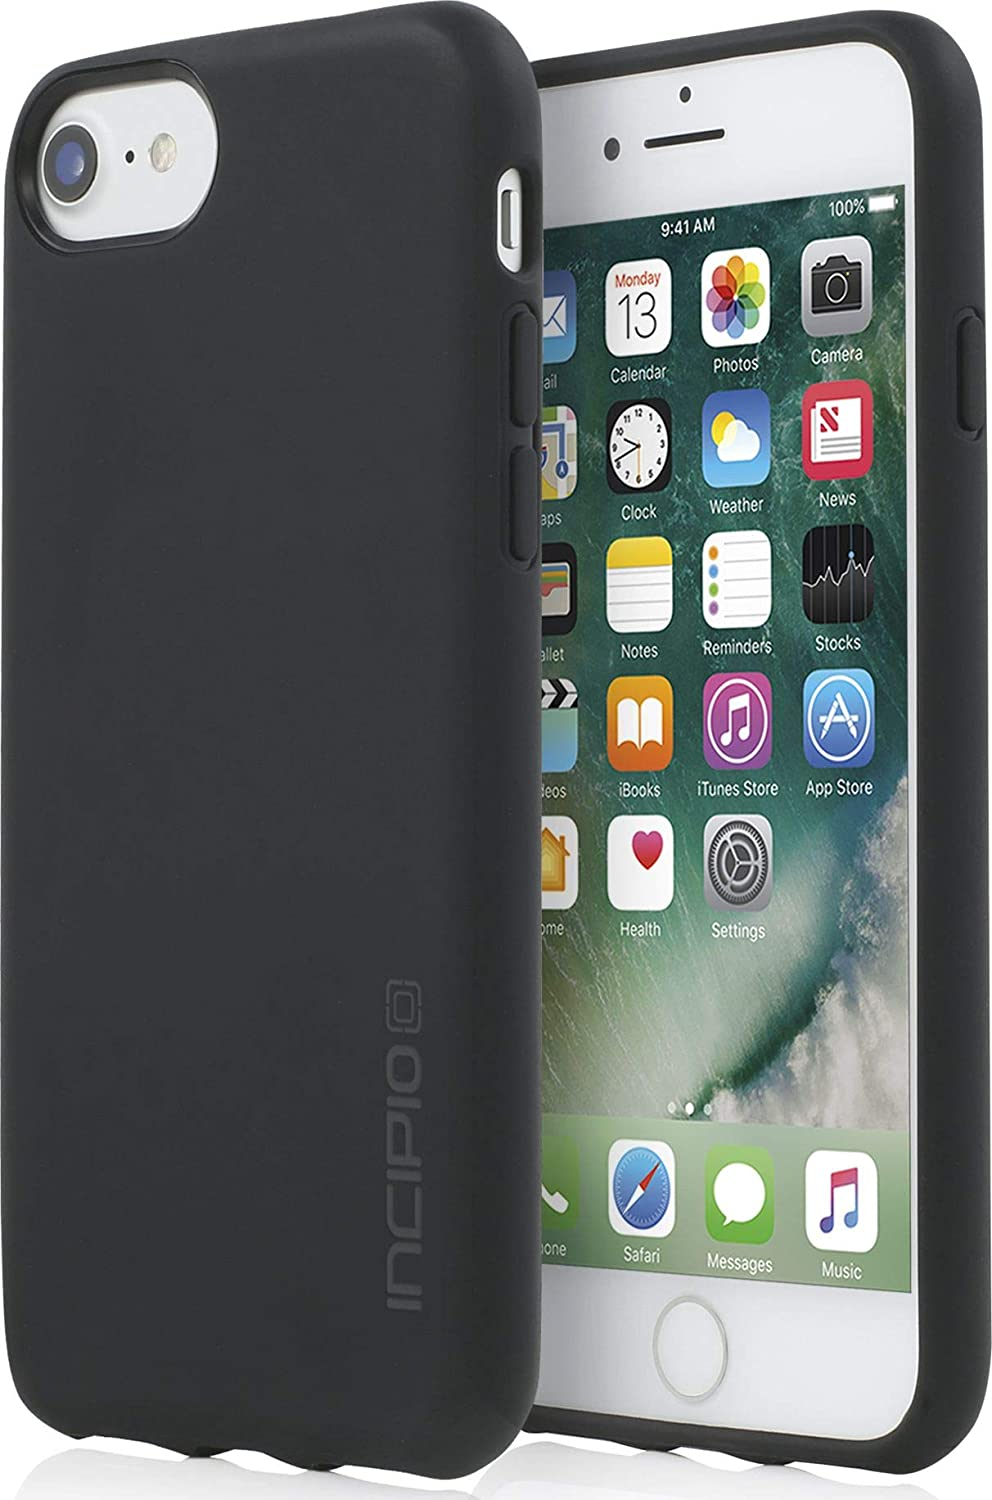 Incipio IPH-1479-BLK NGP iPhone 8 & iPhone 7/6/6s Case with Translucent, Shock-Absorbing Polymer Material for iPhone 8 & iPhone 7/6/6s - Black